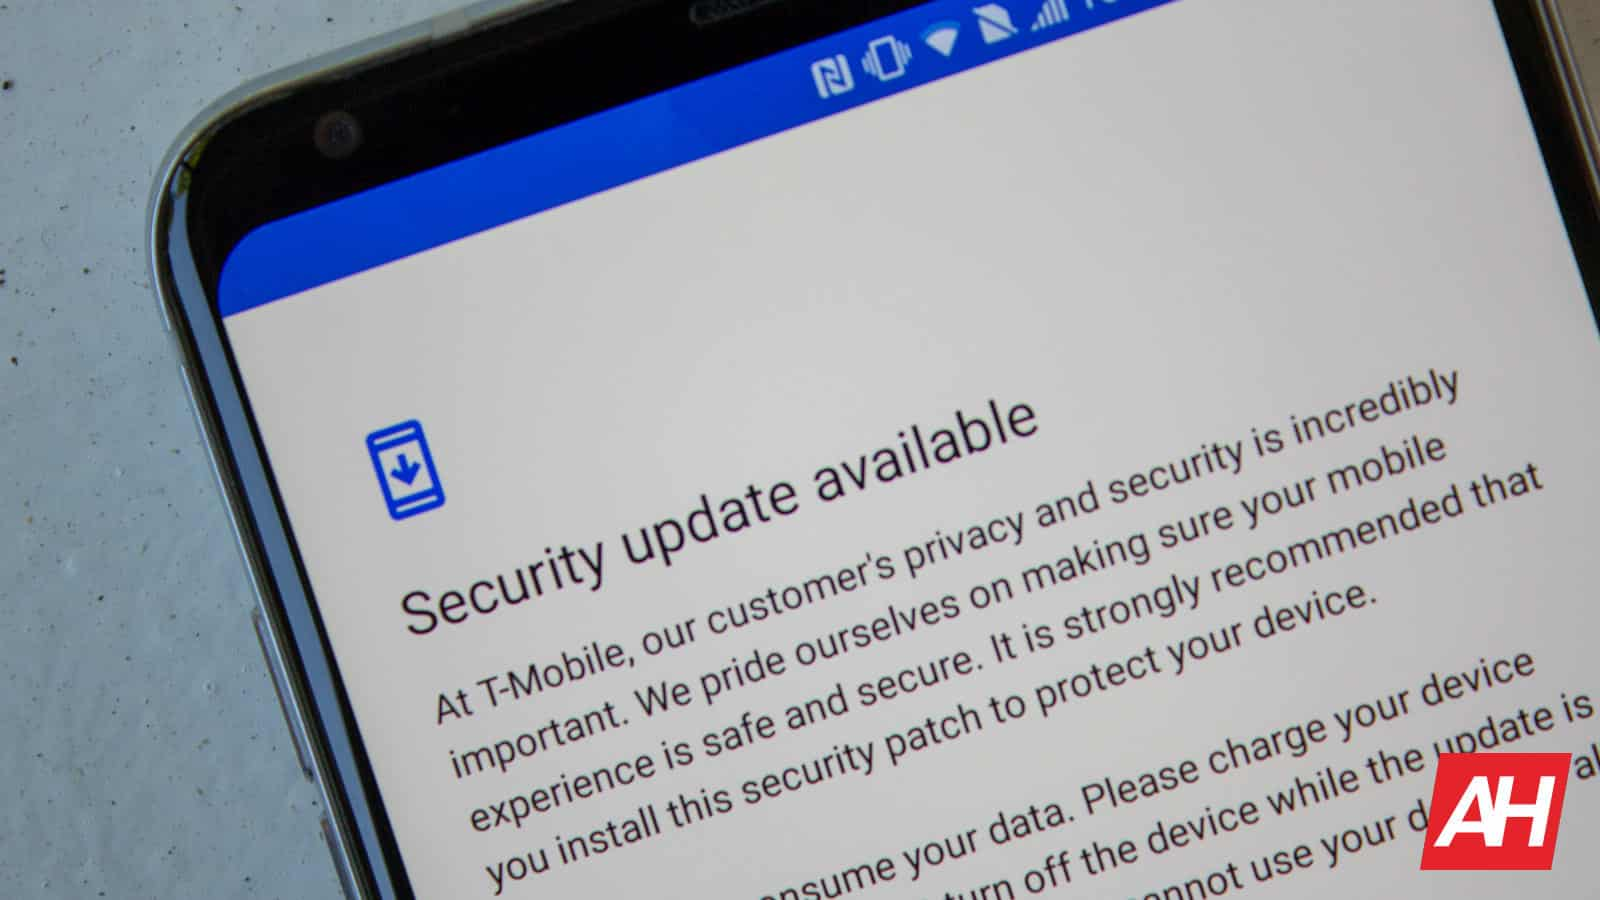 Android LG V30 T Mobile Security Update AH NS 02